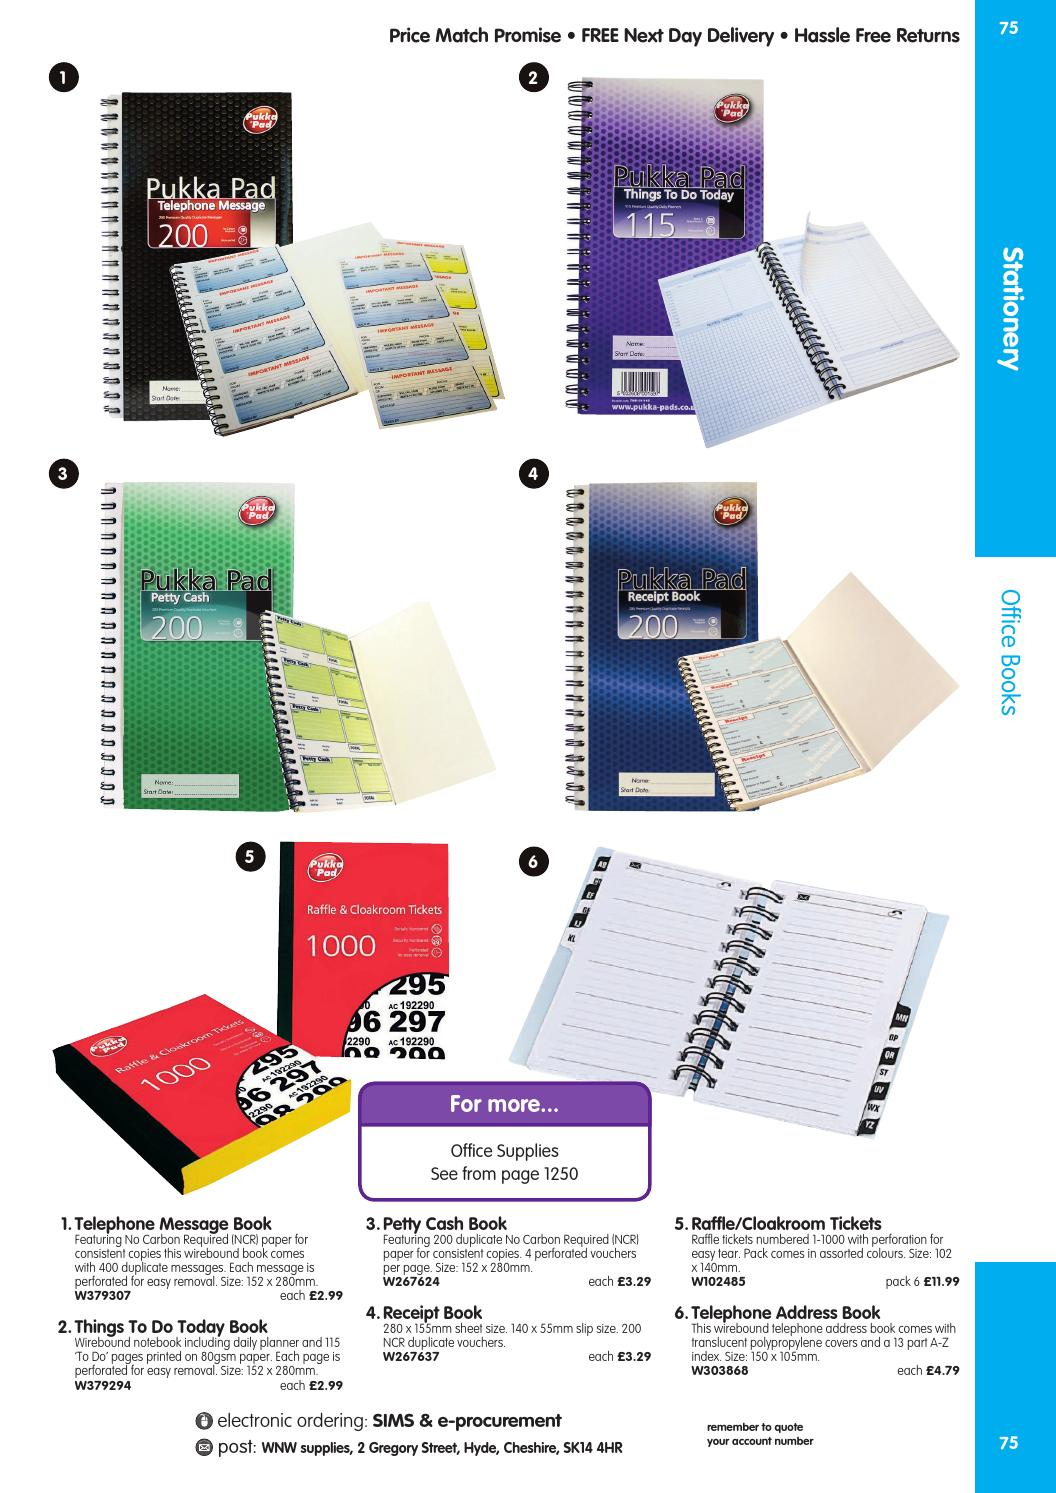 WNW Supplies Catalogue 2015/16 - Stationery by Findel Ltd